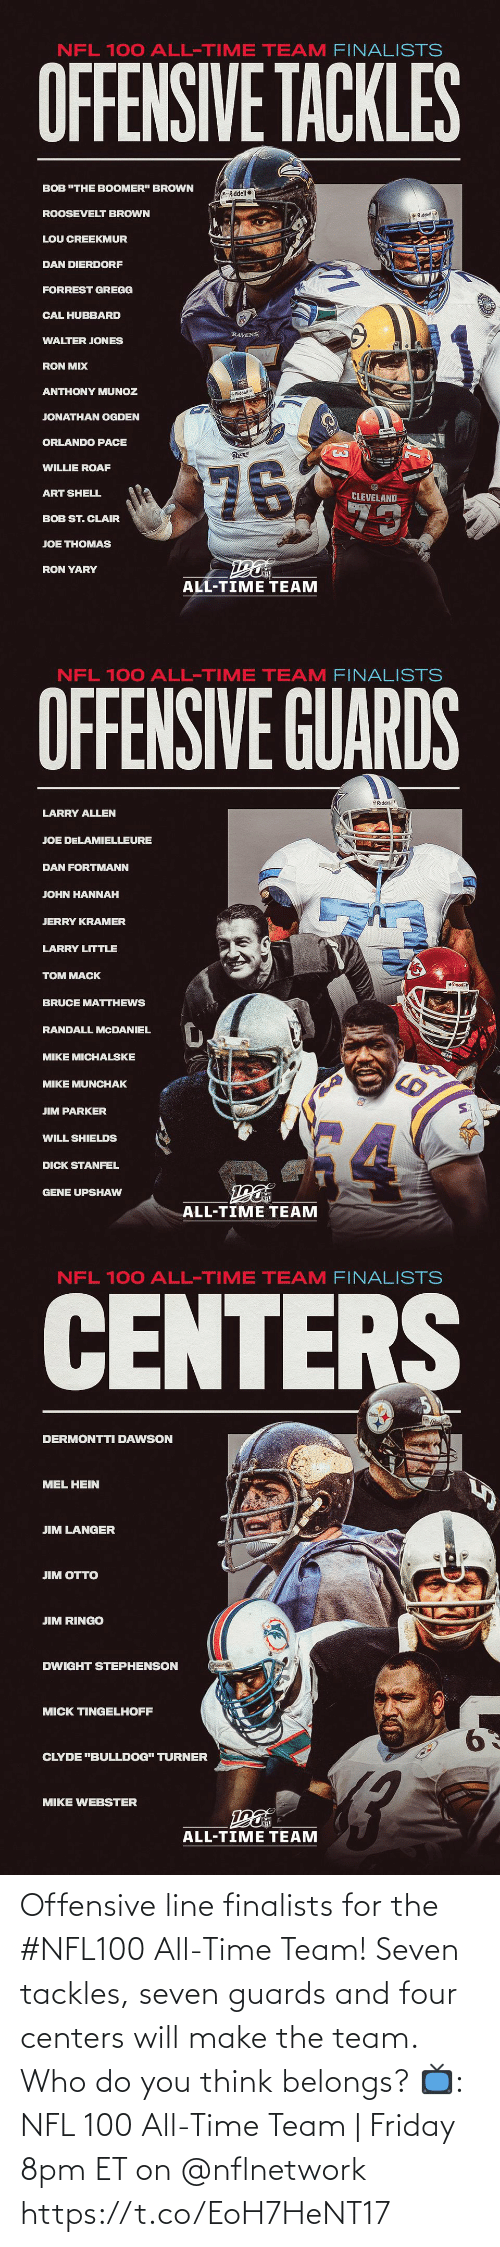 "Anthony: NFL 100 ALL-TIME TEAM FINALISTS  OFFENSIVE TACKLES  BOB ""THE BOOMER"" BROWN  Riddel  ROOSEVELT BROWN  O Riddell  LOU CREEKMUR  DAN DIERDORF  FORREST GREGG  CAL HUBBARD  RAVENS  WALTER JONES  RON MIX  ANTHONY MUNOZ  Riddell  JONATHAN OGDEN  ORLANDO PACE  Rams  76  WILLIE ROAF  ART SHELL  CLEVELAND  73  BOB ST. CLAIR  JOE THOMAS  RON YARY  ALL-TIME TEAM   NFL 100 ALL-TIME TEAM FINALISTS  OFFENSIVE GUARDS  Riddel  LARRY ALLEN  JOE DELAMIELLEURE  DAN FORTMANN  JOHN HANNAH  JERRY KRAMER  LARRY LITTLE  TOM MACK  BRUCE MATTHEWS  RANDALL MCDANIEL  MIKE MICHALSKE  MIKE MUNCHAK  JIM PARKER  WILL SHIELDS  DICK STANFEL  GENE UPSHAW  ALL-TIME TEAM   NFL 100 ALL-TIME TEAM FINALISTS  CENTERS  DERMONTTI DAWSON  MEL HEIN  JIM LANGER  ЛM OТTO  JIM RINGO  DWIGHT STEPHENSON  MICK TINGELHOFF  9.  CLYDE ""BULLDOG"" TURNER  MIKE WEBSTER  ALL-TIME TEAM Offensive line finalists for the #NFL100 All-Time Team!  Seven tackles, seven guards and four centers will make the team. Who do you think belongs?  📺: NFL 100 All-Time Team 